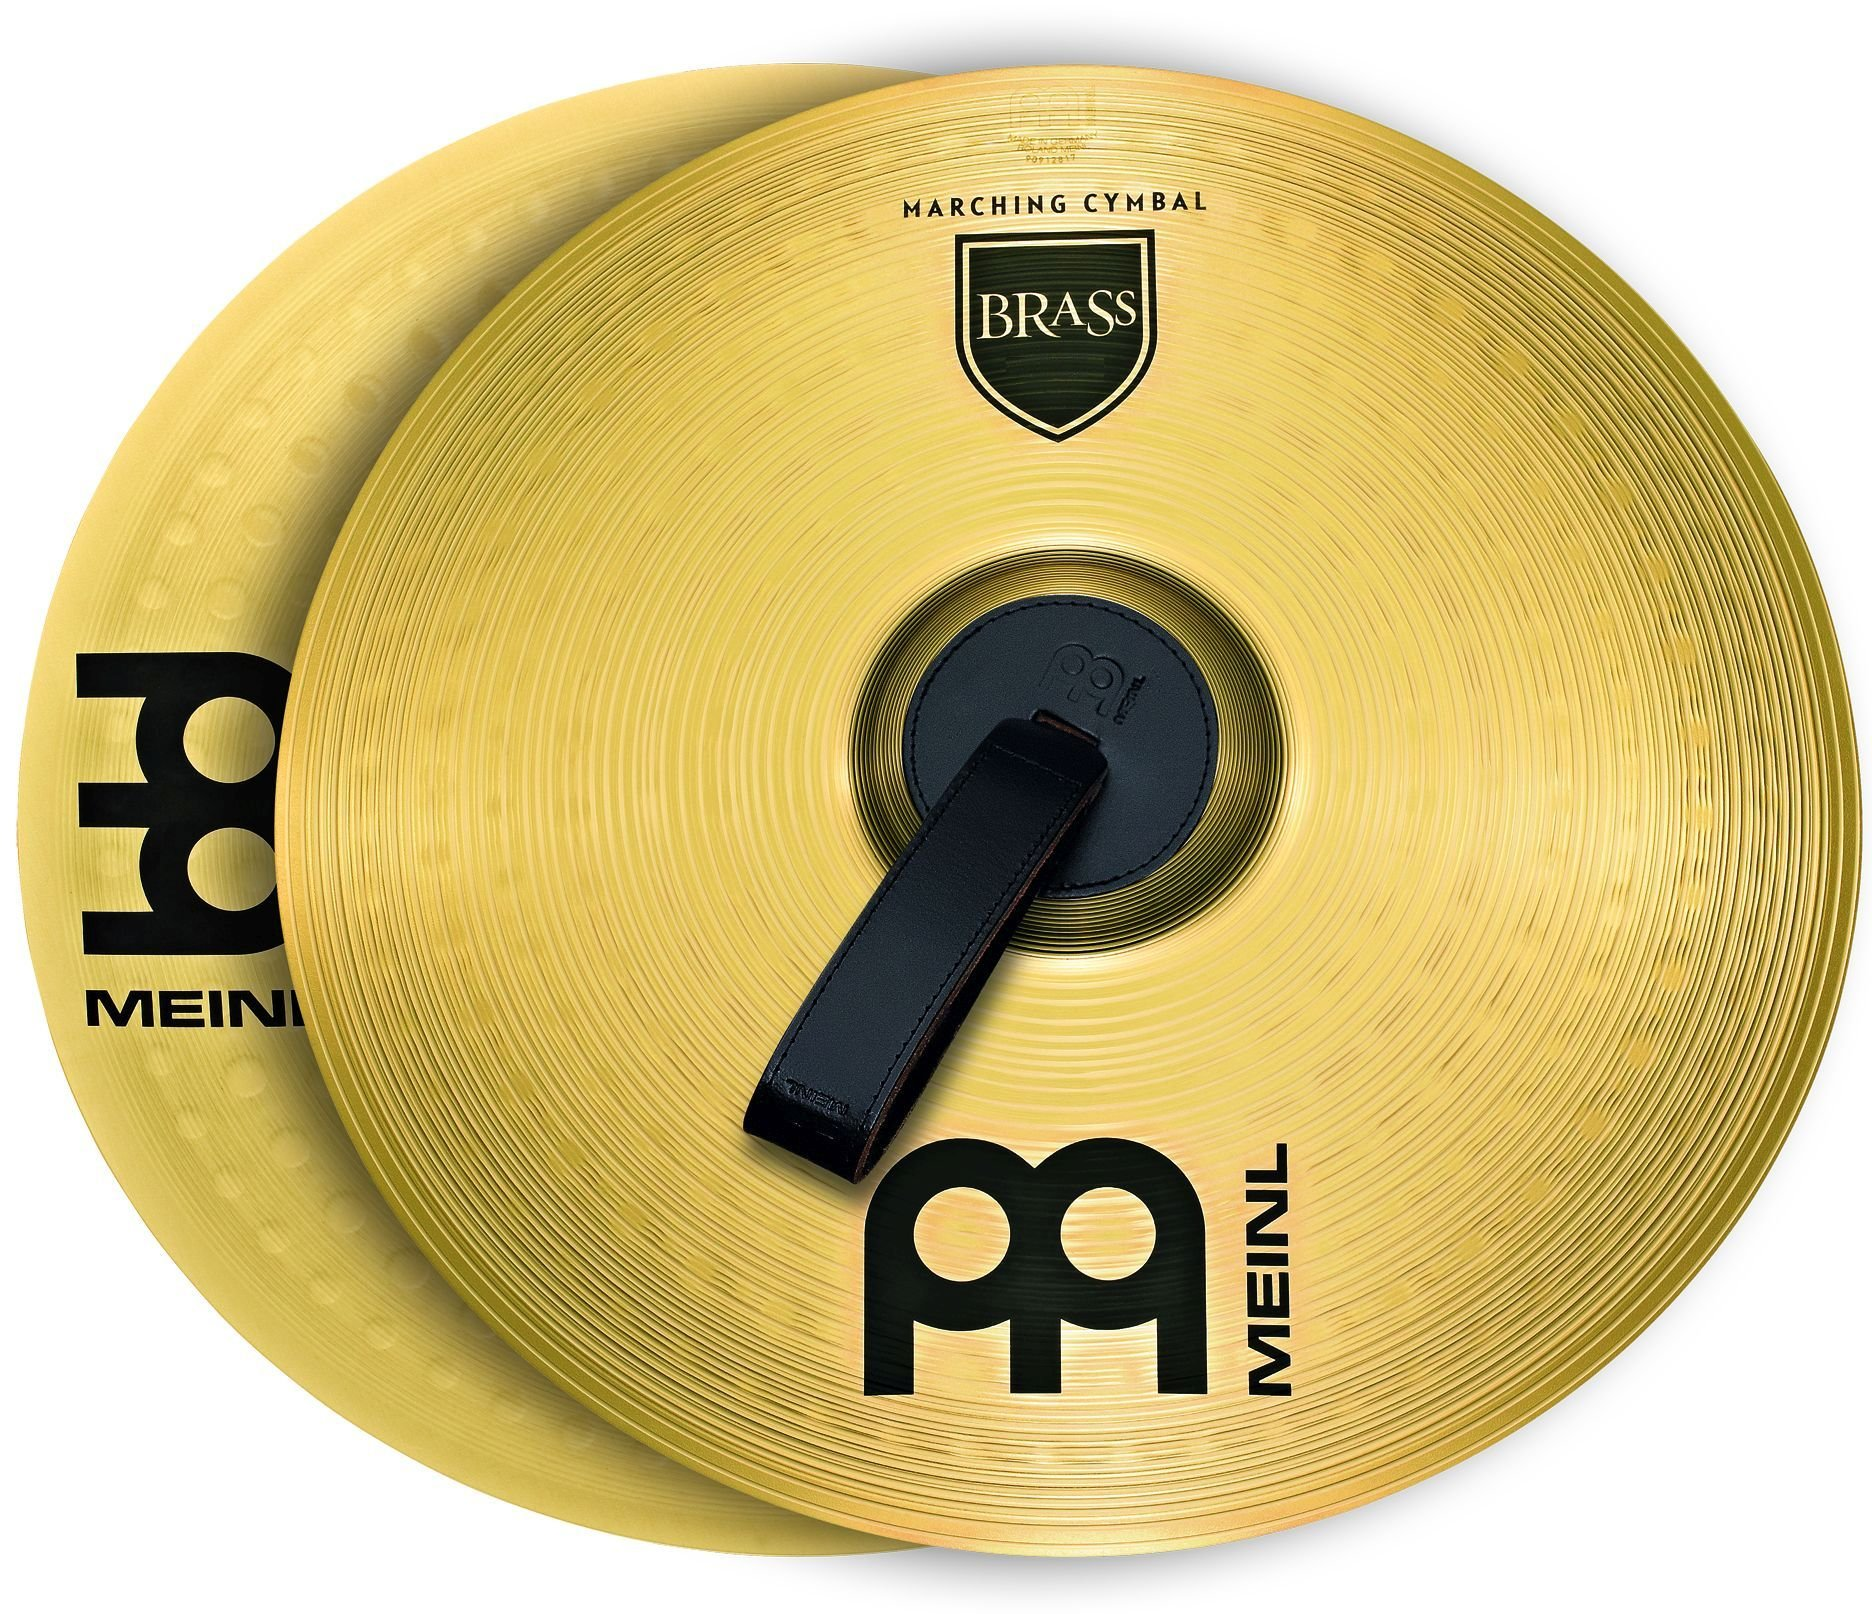 Meinl 14'' Marching Cymbal Pair with Straps - Brass Alloy Traditional Finish - Made In Germany, 2-YEAR WARRANTY (MA-BR-14M) by Meinl Cymbals